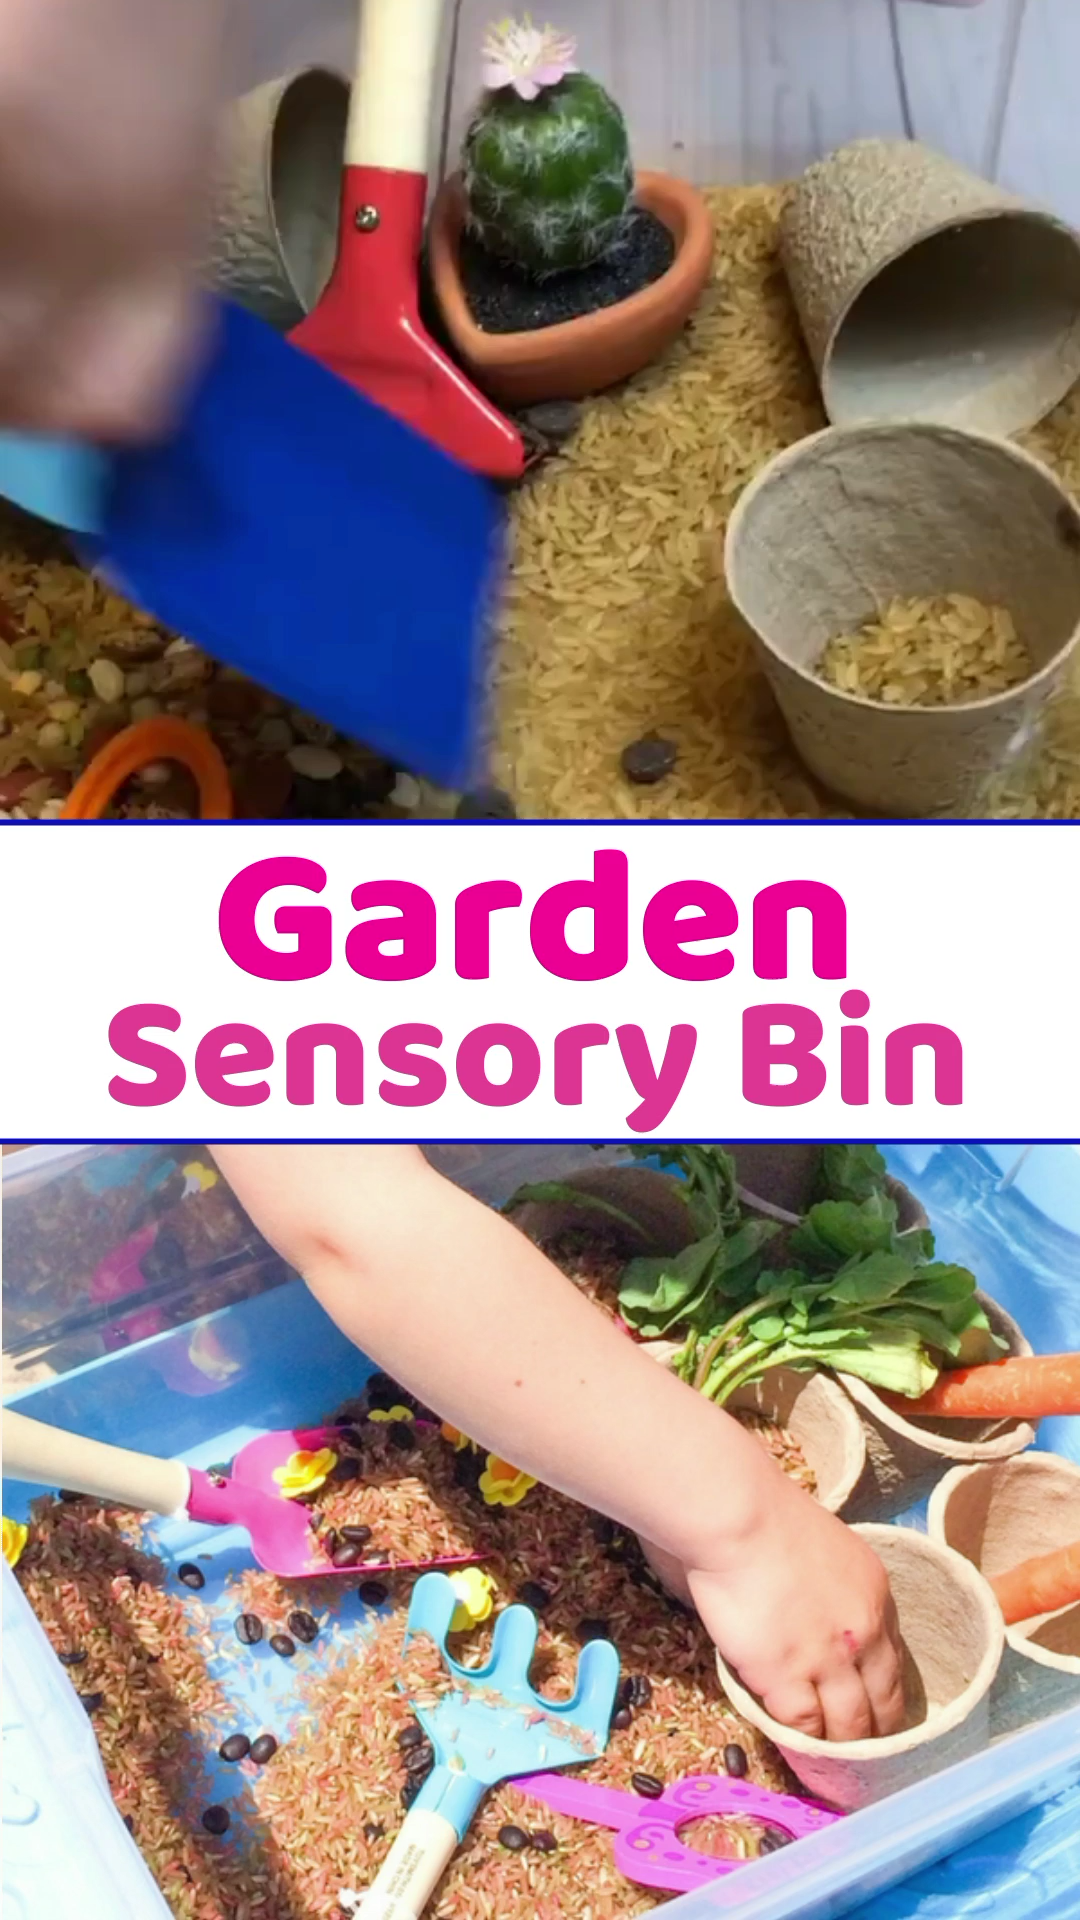 Garden Sensory Bin with Scented Rice